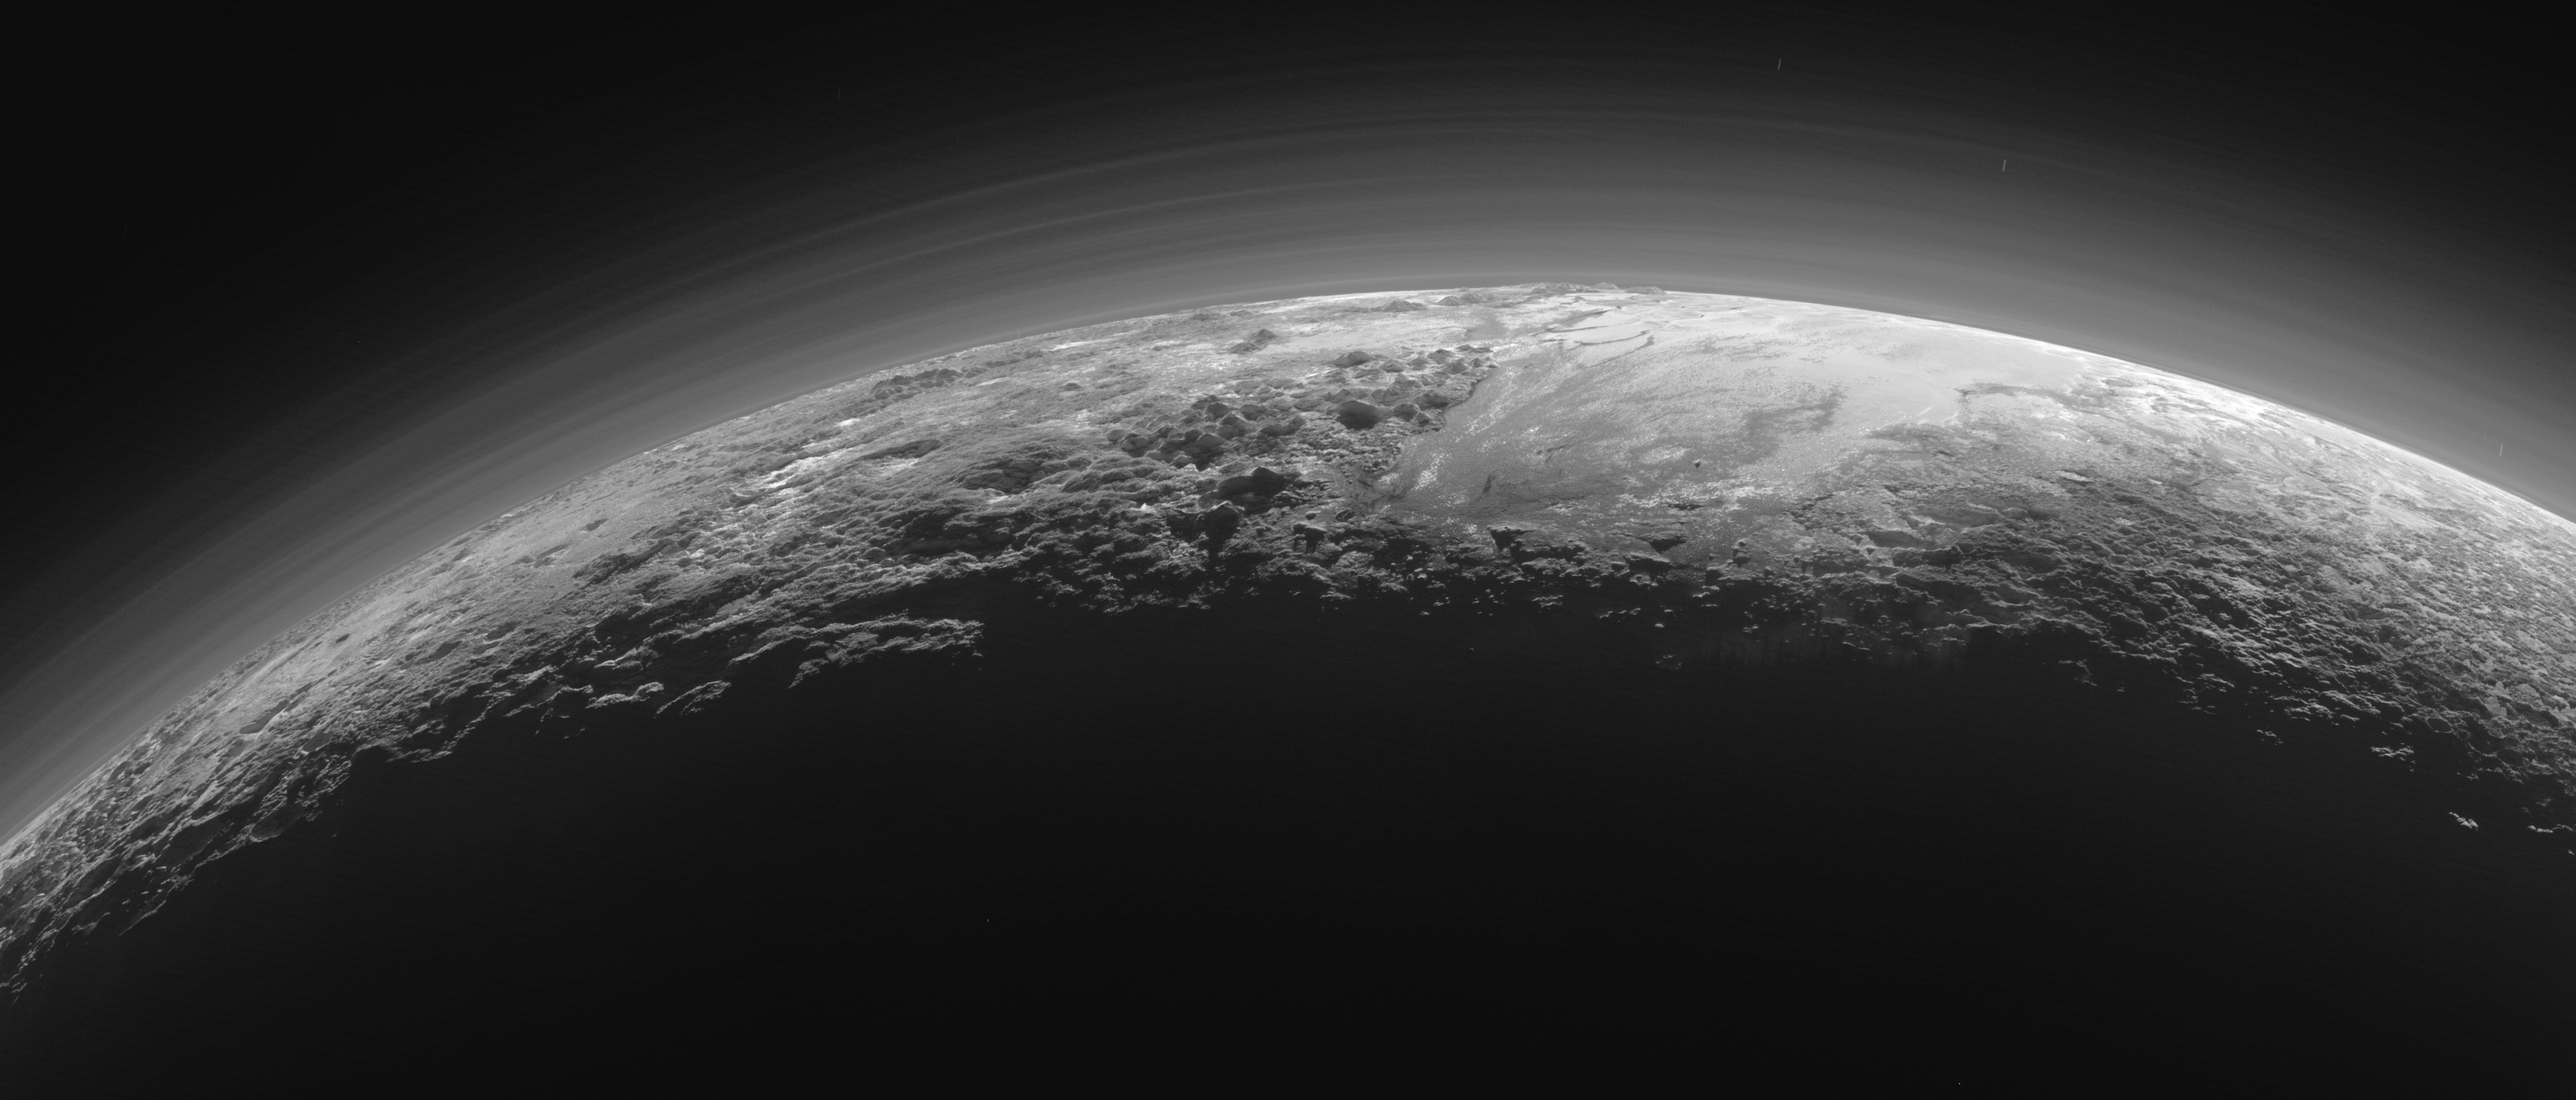 Photos: Never Before Seen Closeup of Pluto's Surface Captured by Spacecraft